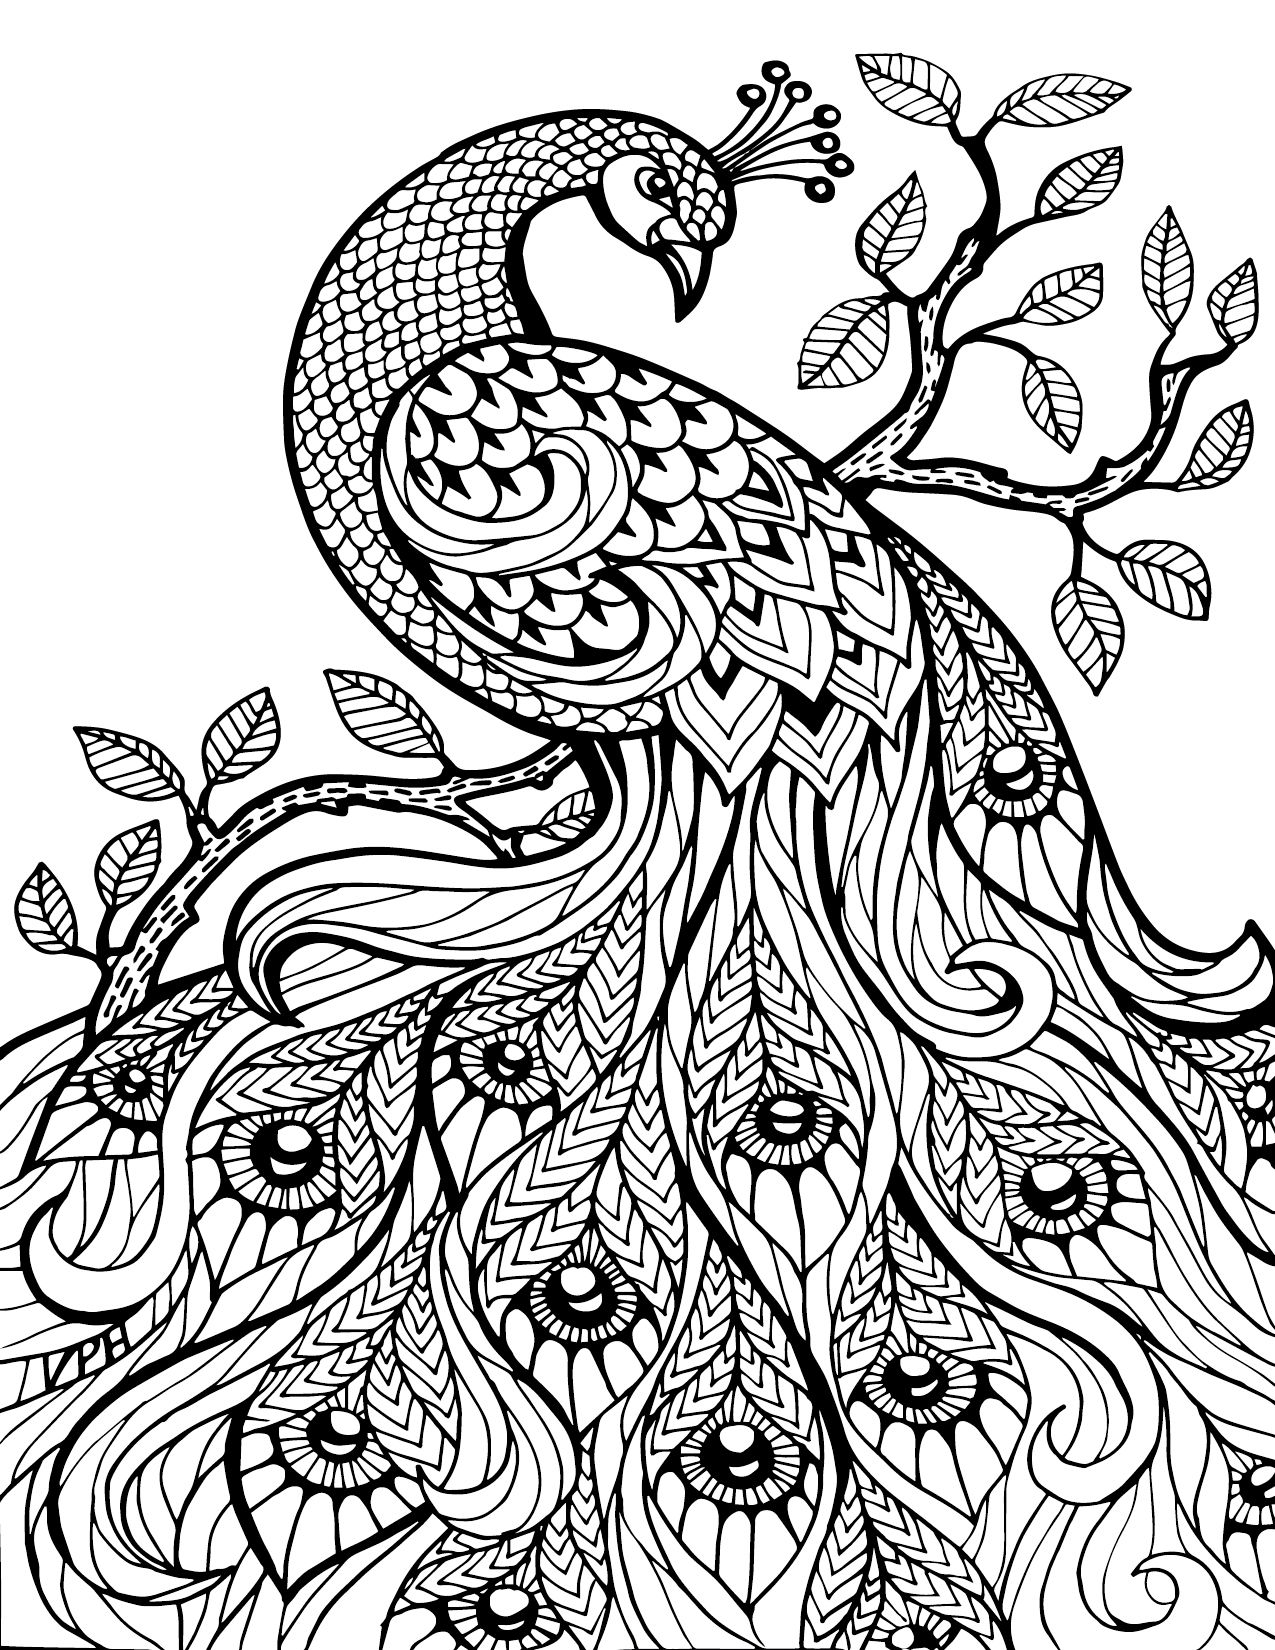 Printable adult thanksgiving coloring sheet - Free Printable Coloring Pages For Adults Only Image 36 Art Davlin Publishing